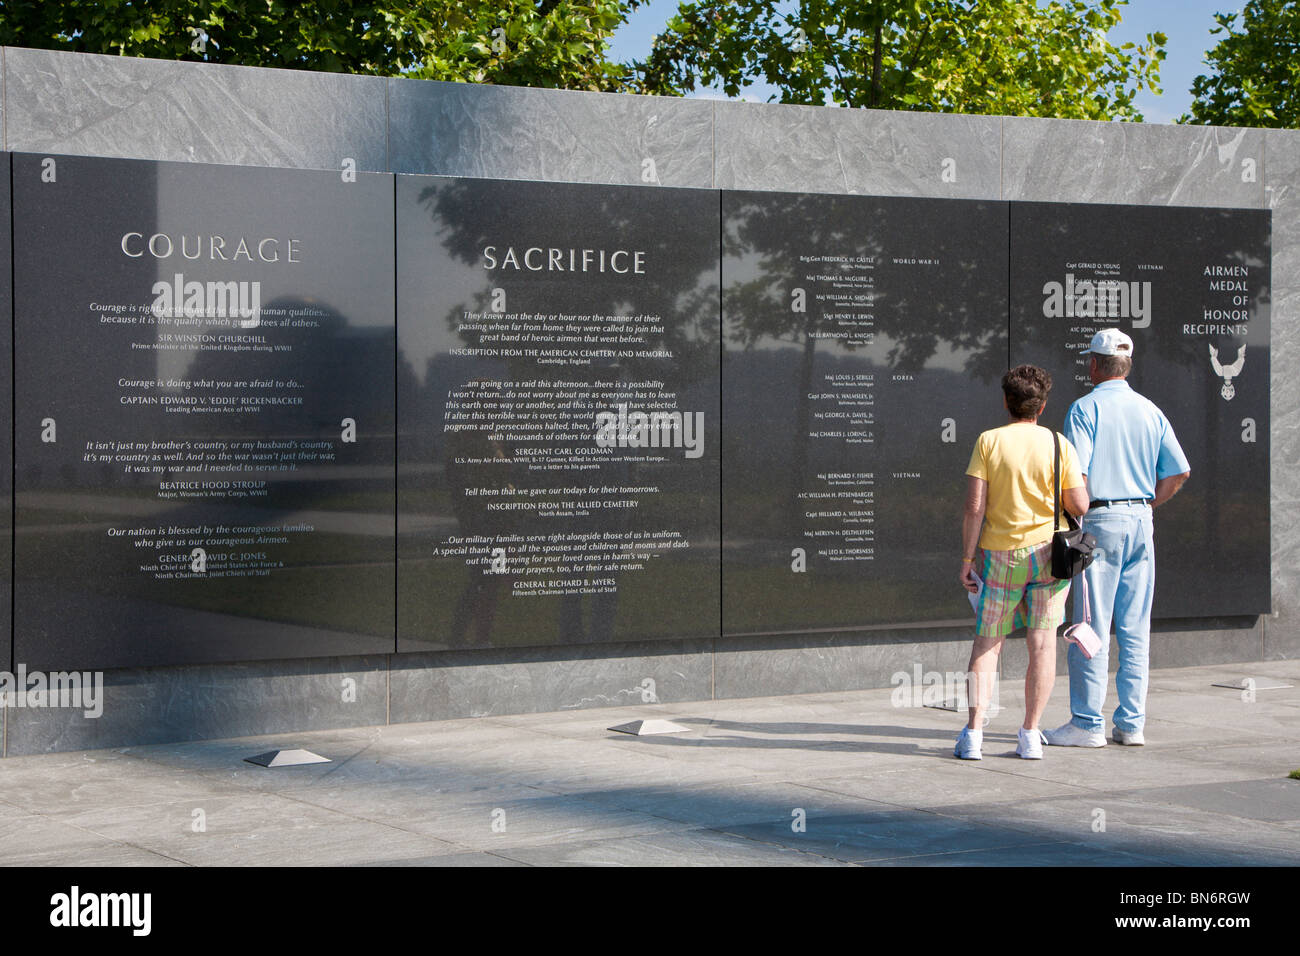 Couple reading Medal of Honor inscriptions on the wall at the United States Air Force Memorial in Arlington, Virginia - Stock Image